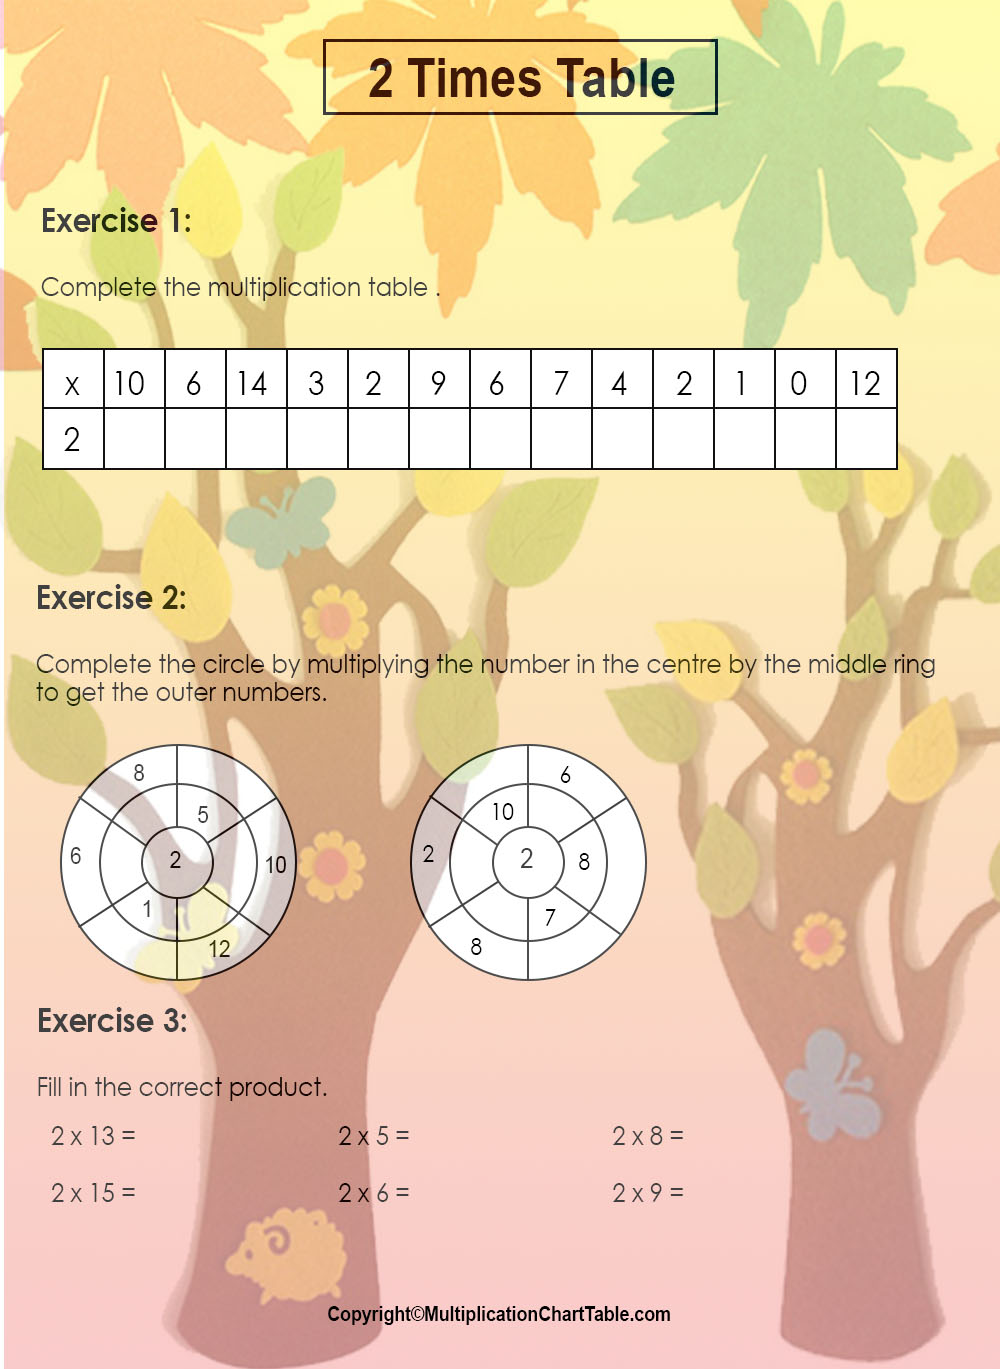 2 times table worksheets